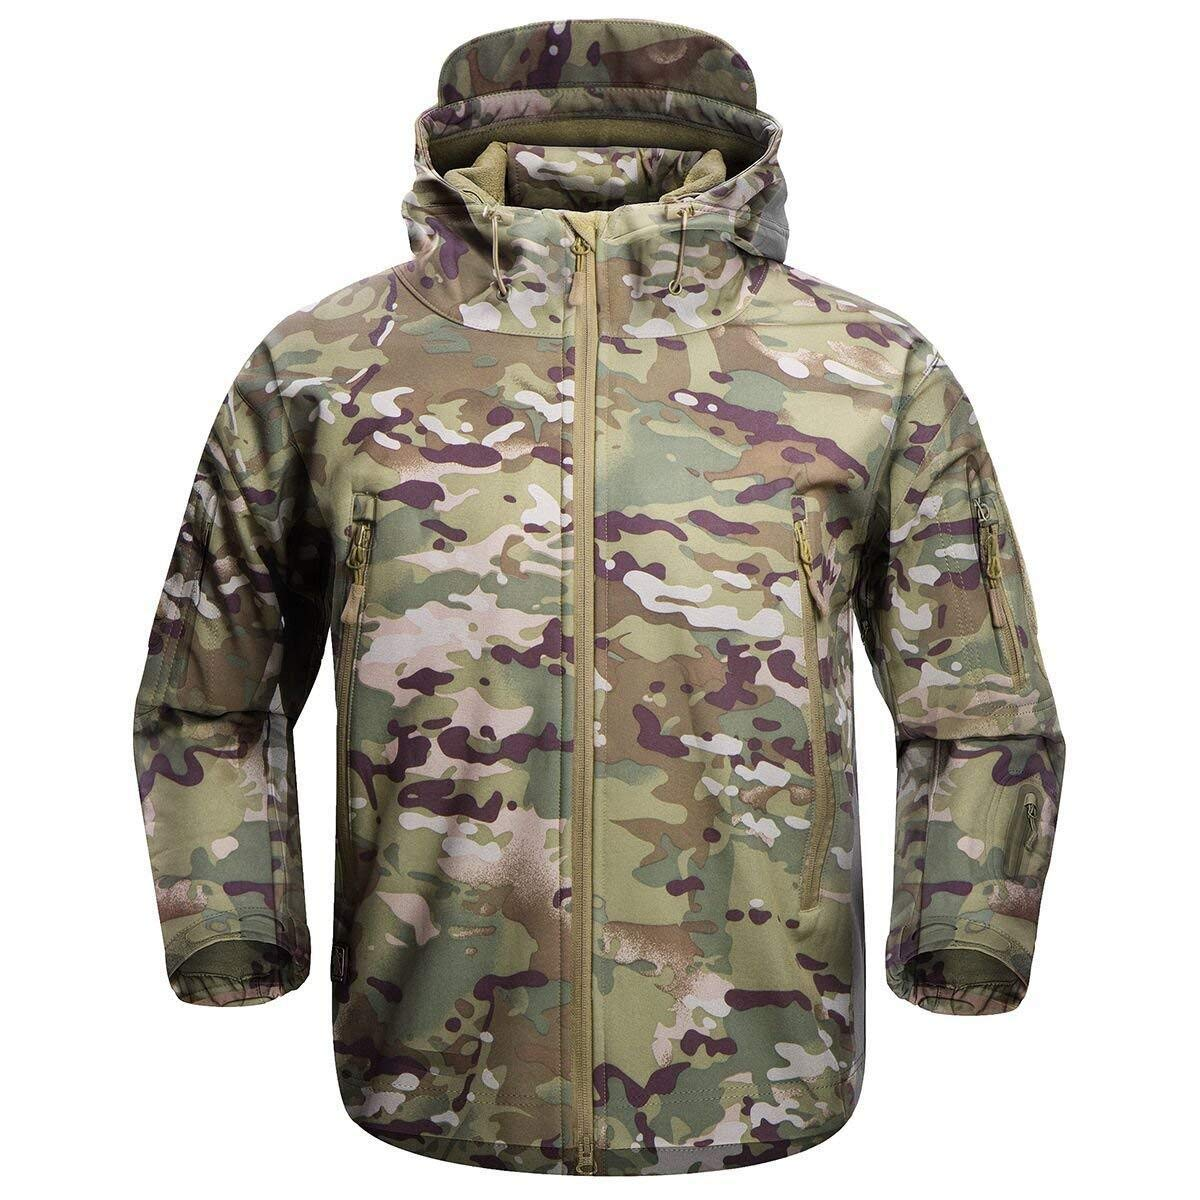 FREE SOLDIER Men's Outdoor Waterproof Soft Shell Hooded Military Tactical Jacket nanjing yebao